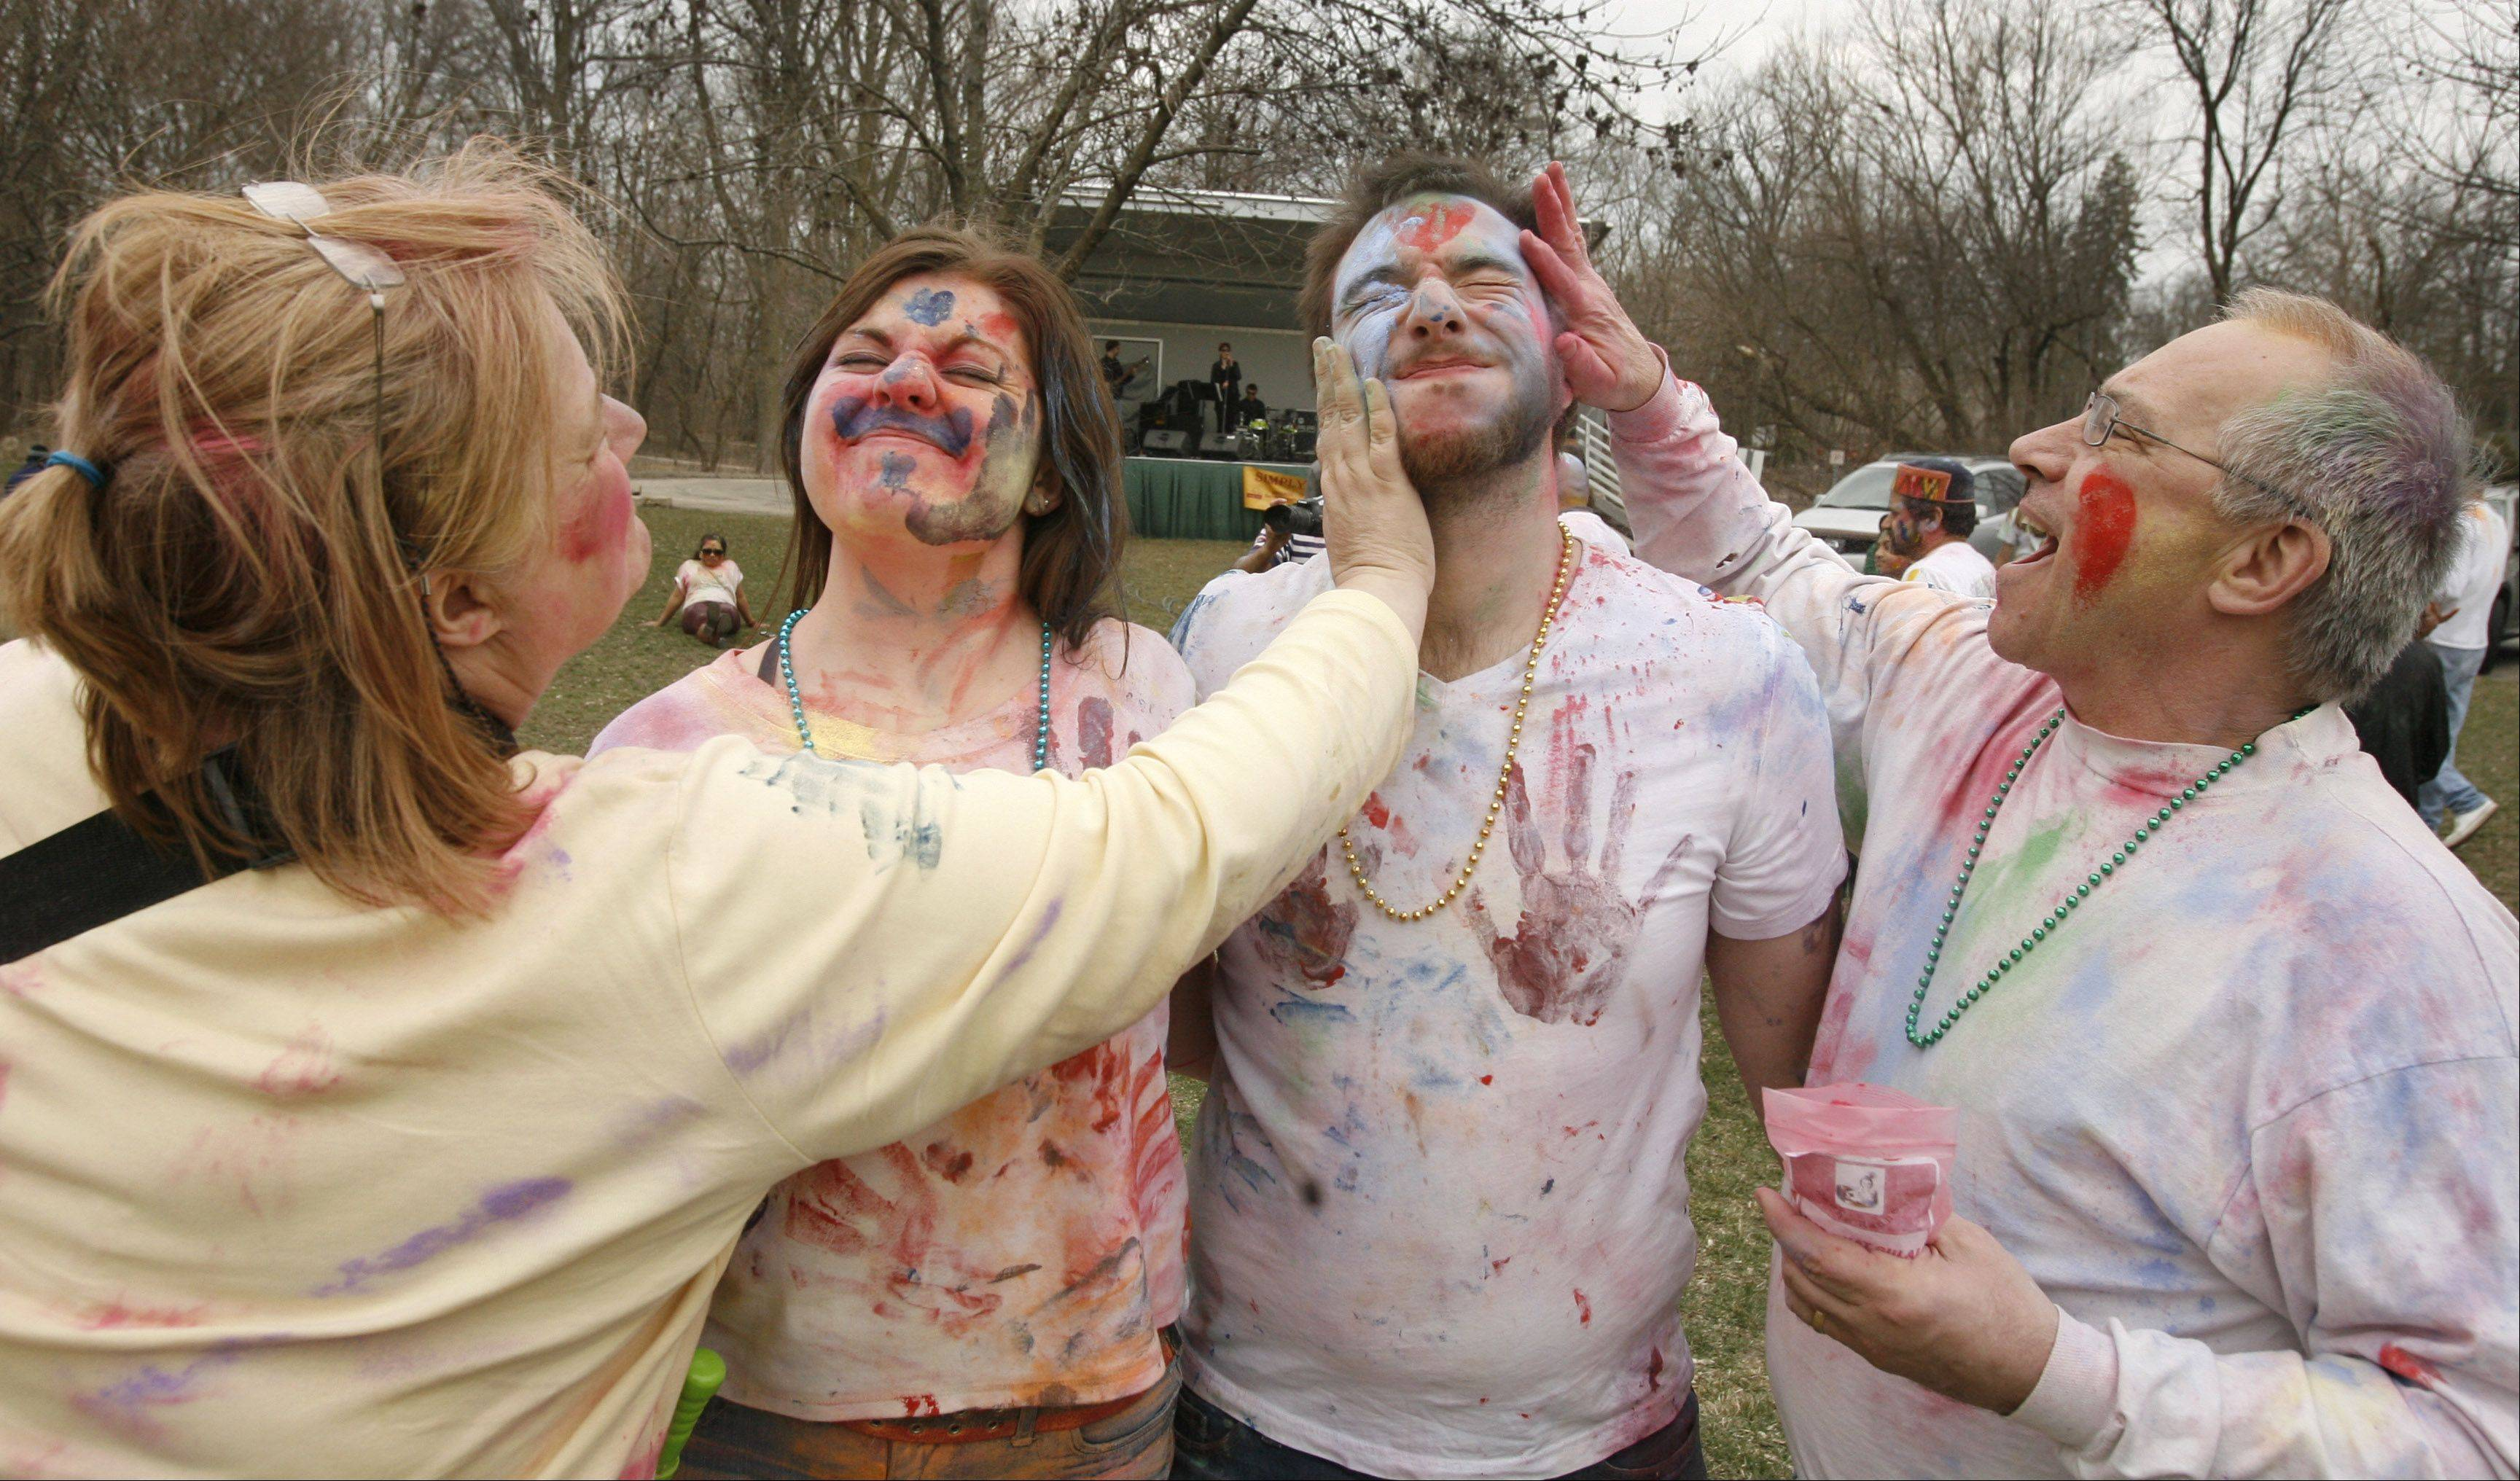 Jeanie and Karl Michalec of Elk Grove spread color on their son Ian's face while Jamie Hicks waits her turn Saturday as they celebrate the coming of spring at the Simply Vedic Cultural Society's annual Festival of Colors in Naperville.